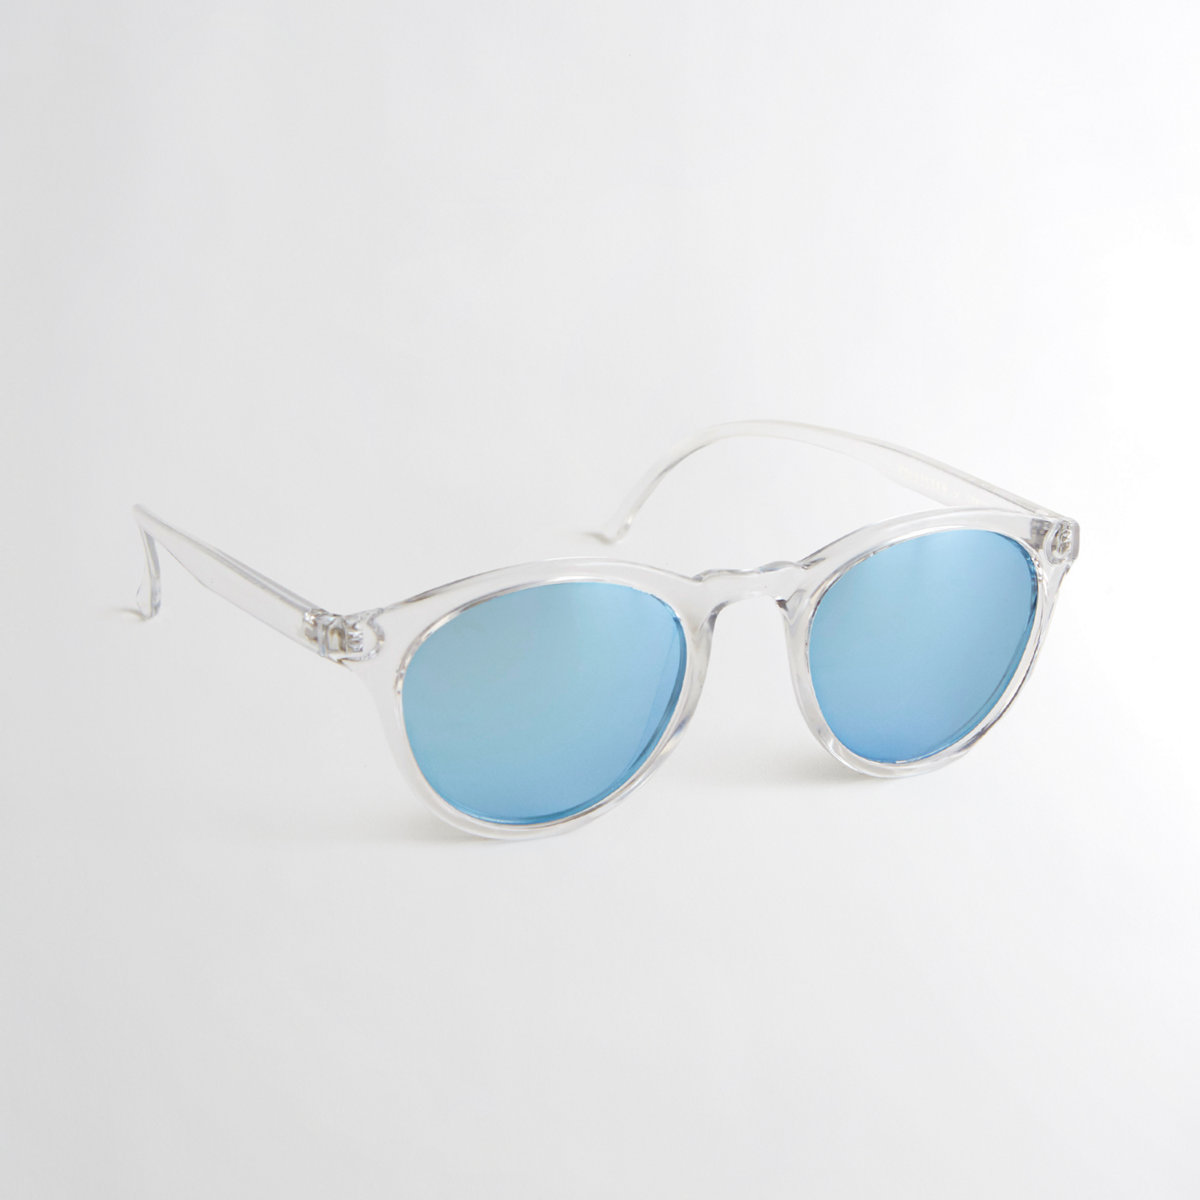 823b0413d6a Hollister X Sunski Nicoya Sunglasses